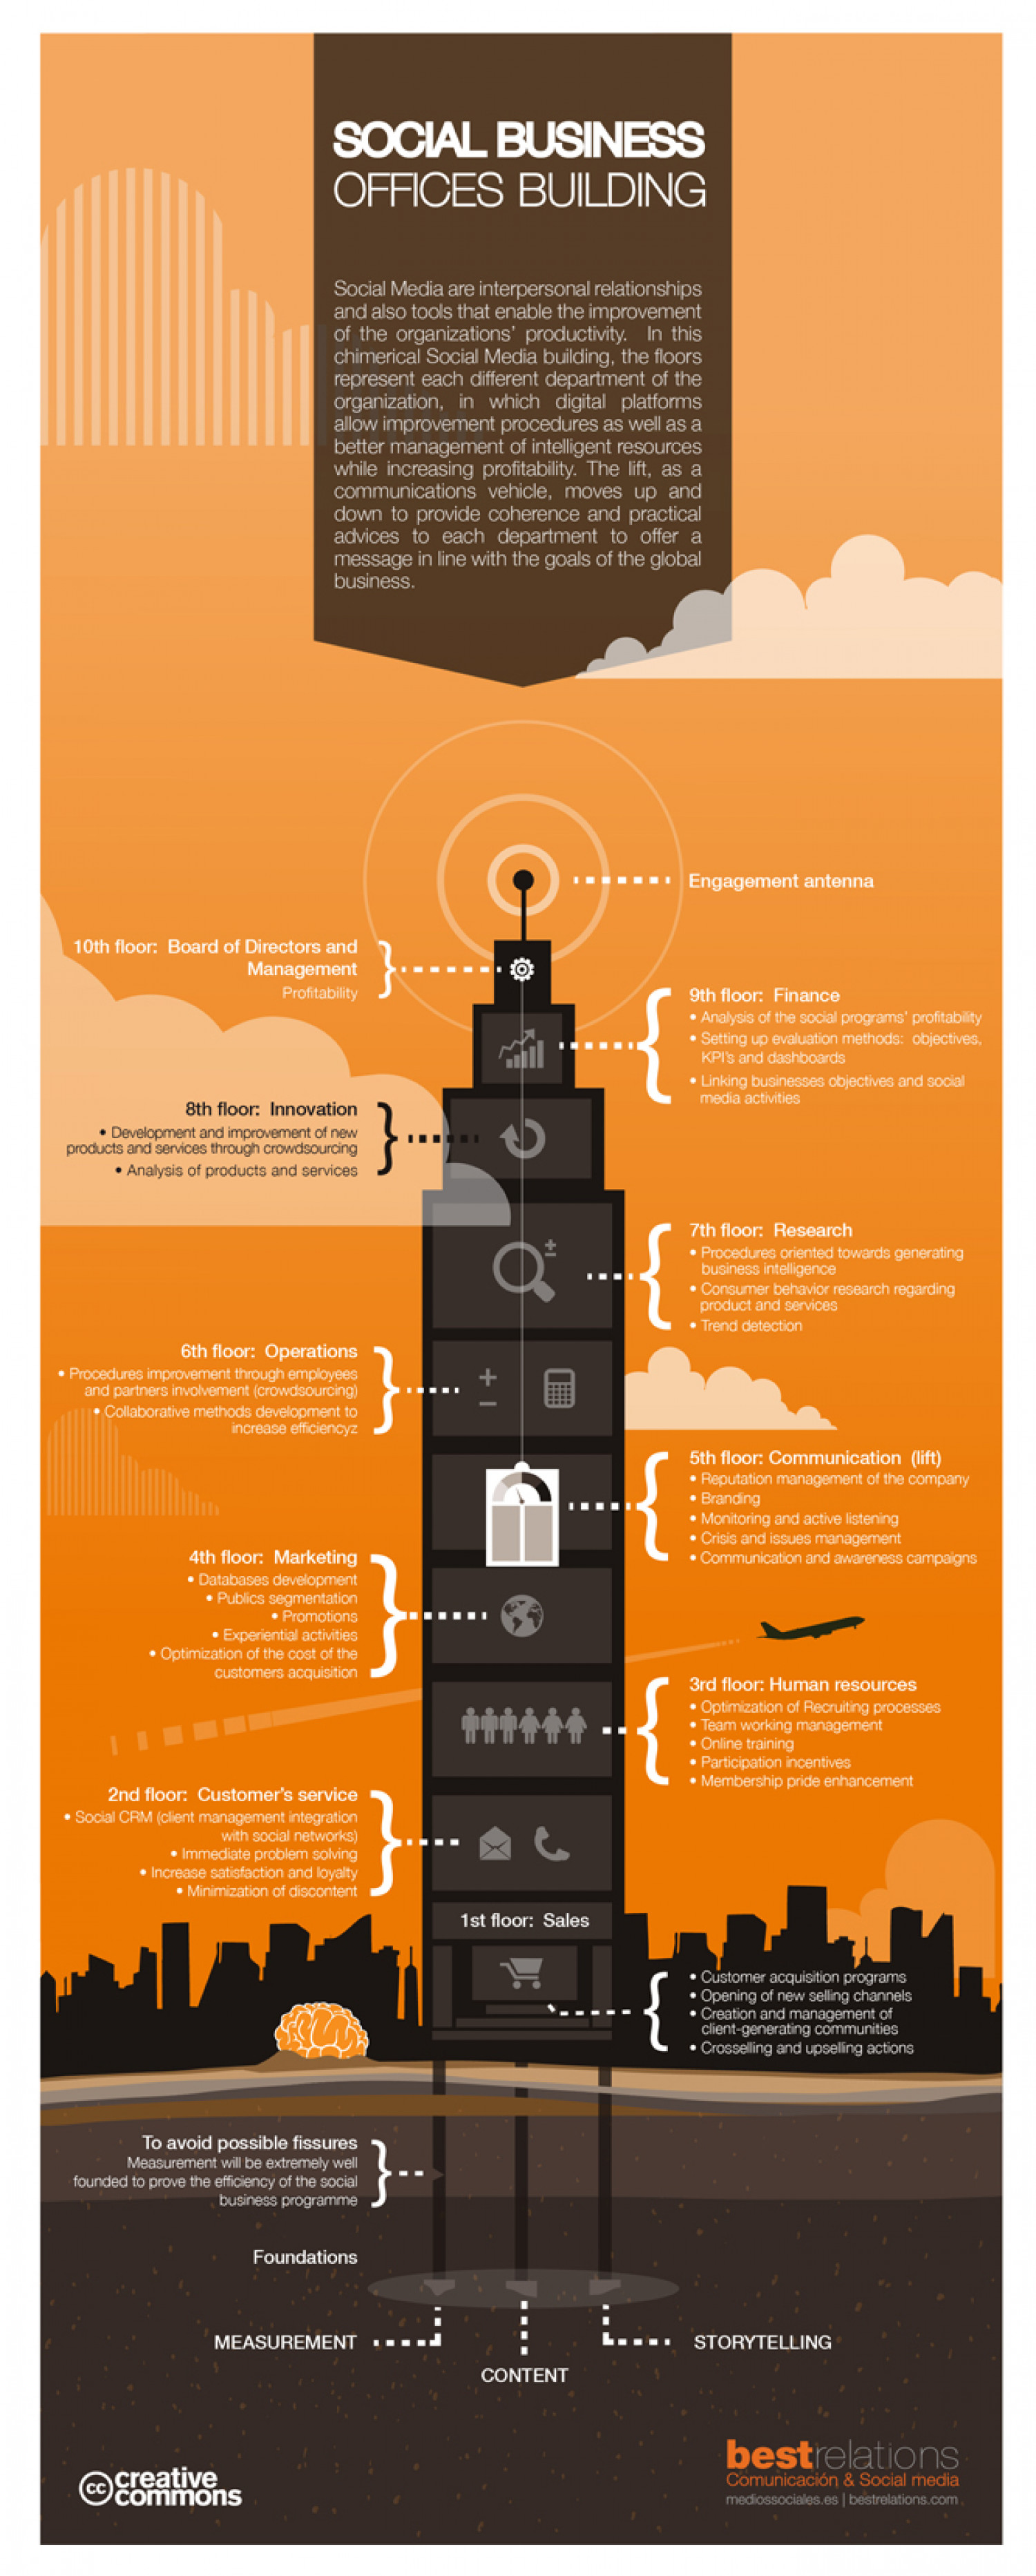 Social Business offices Building Infographic